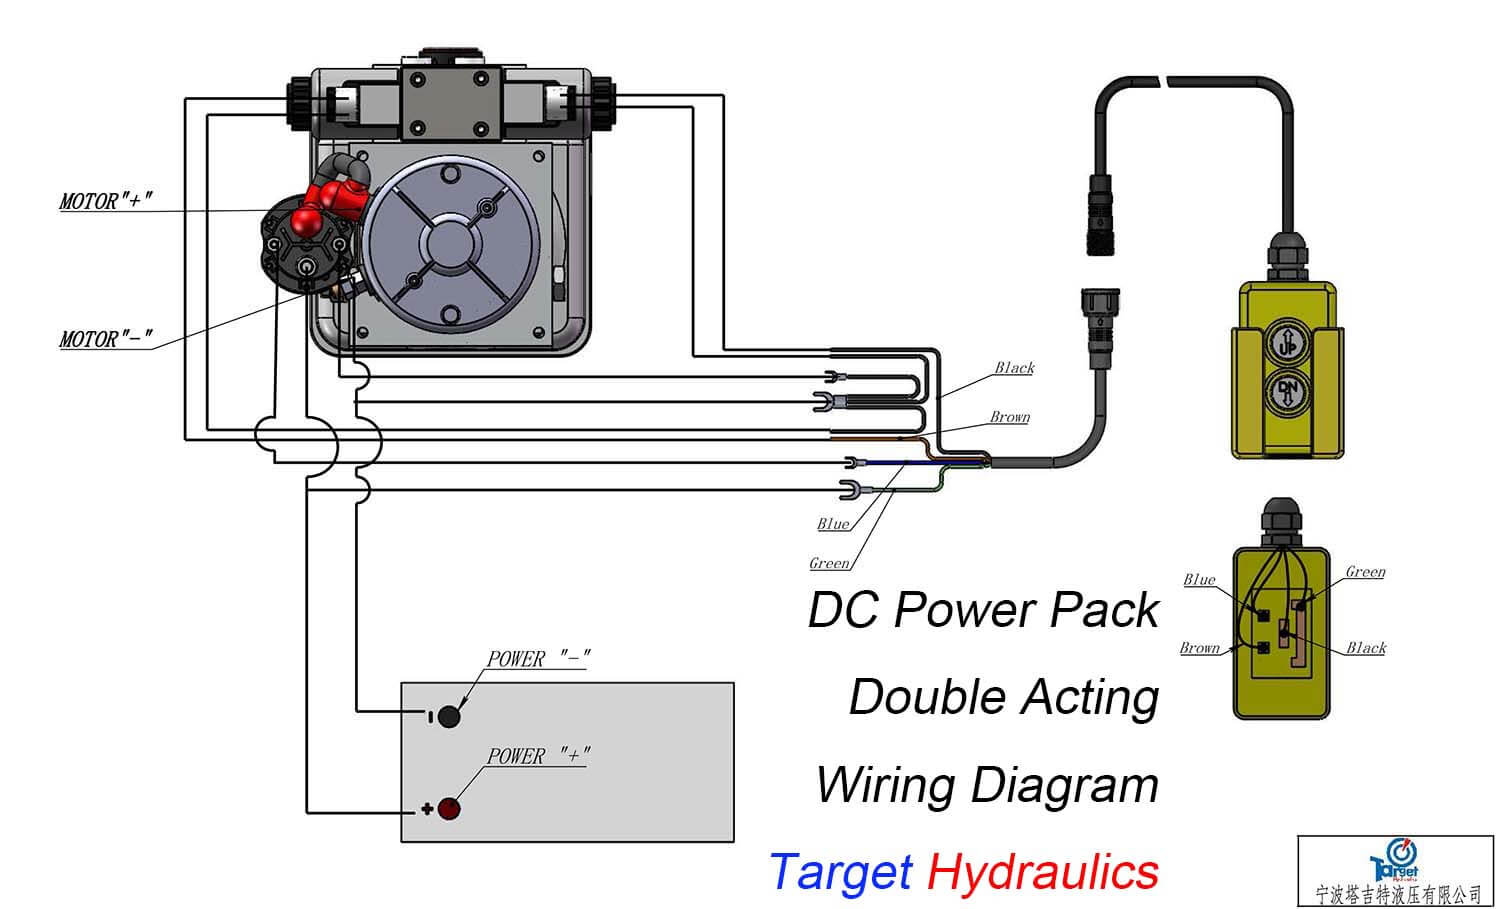 How to Wire_DC Motor Double Acting Power Pack how to wire hydraulic power pack,power unit diagram design dump trailer hydraulic pump wiring diagram at eliteediting.co